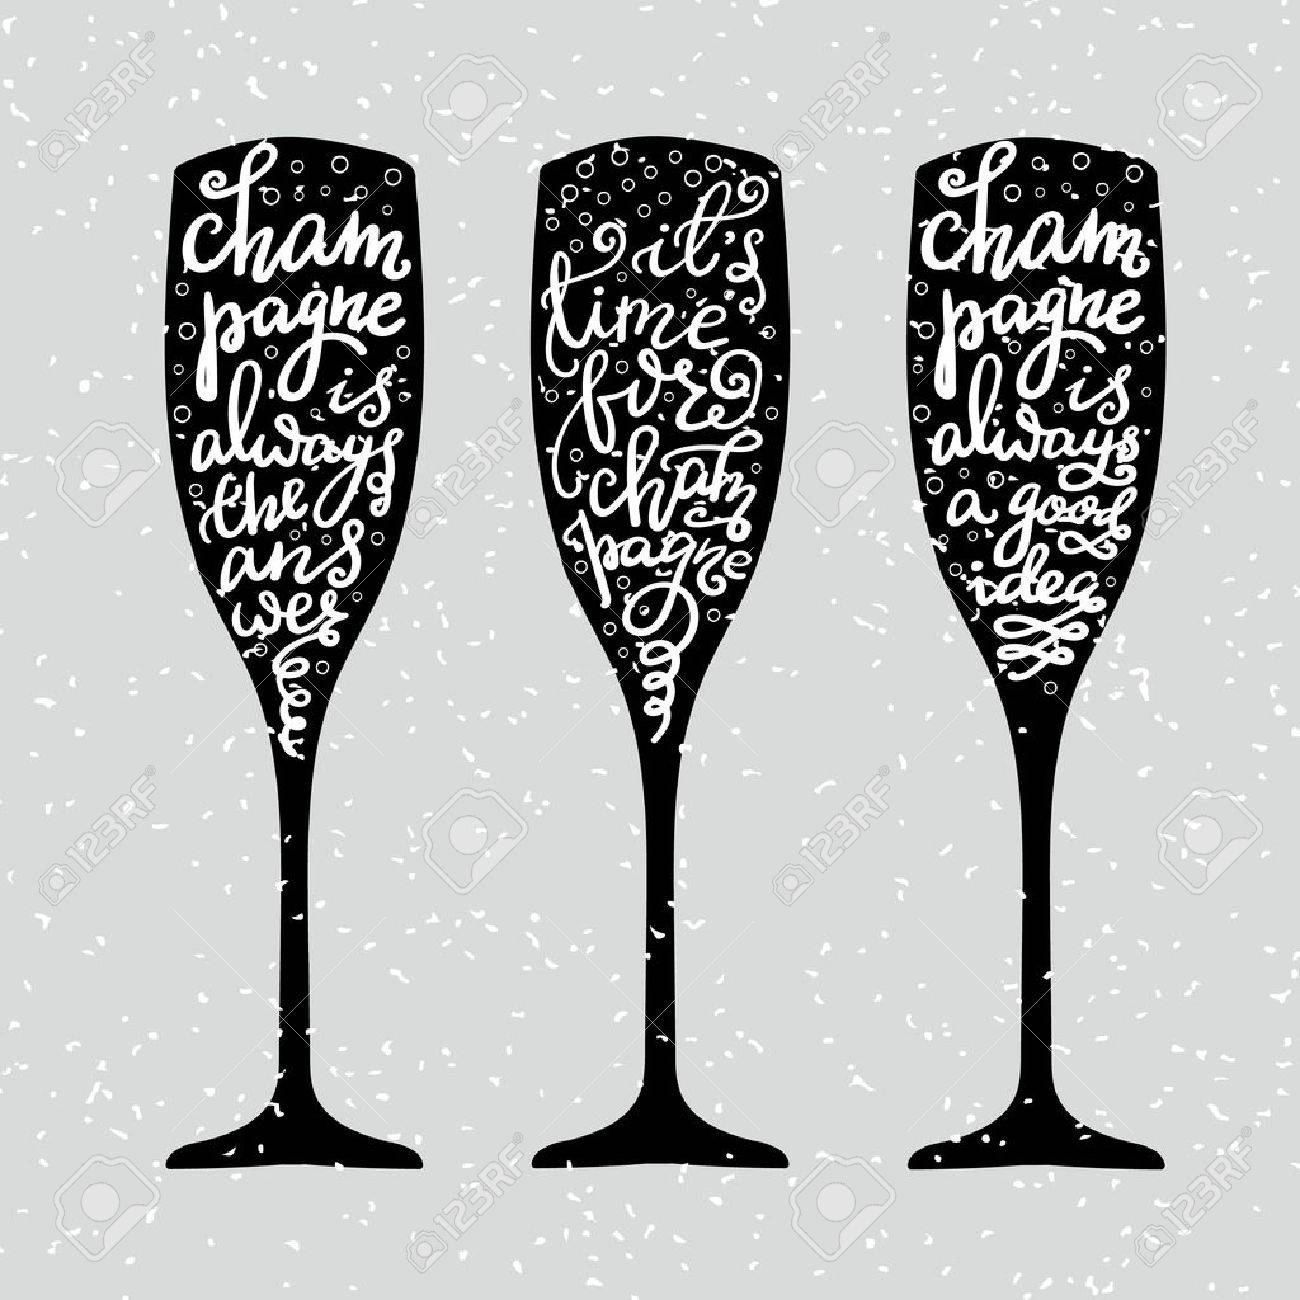 Champagne New Years lettering modern calligraphy set on champagne glass shape isolated vector typography elements. Its time for champagne Champagne is always the answer Champagne is always a good idea - 46597536